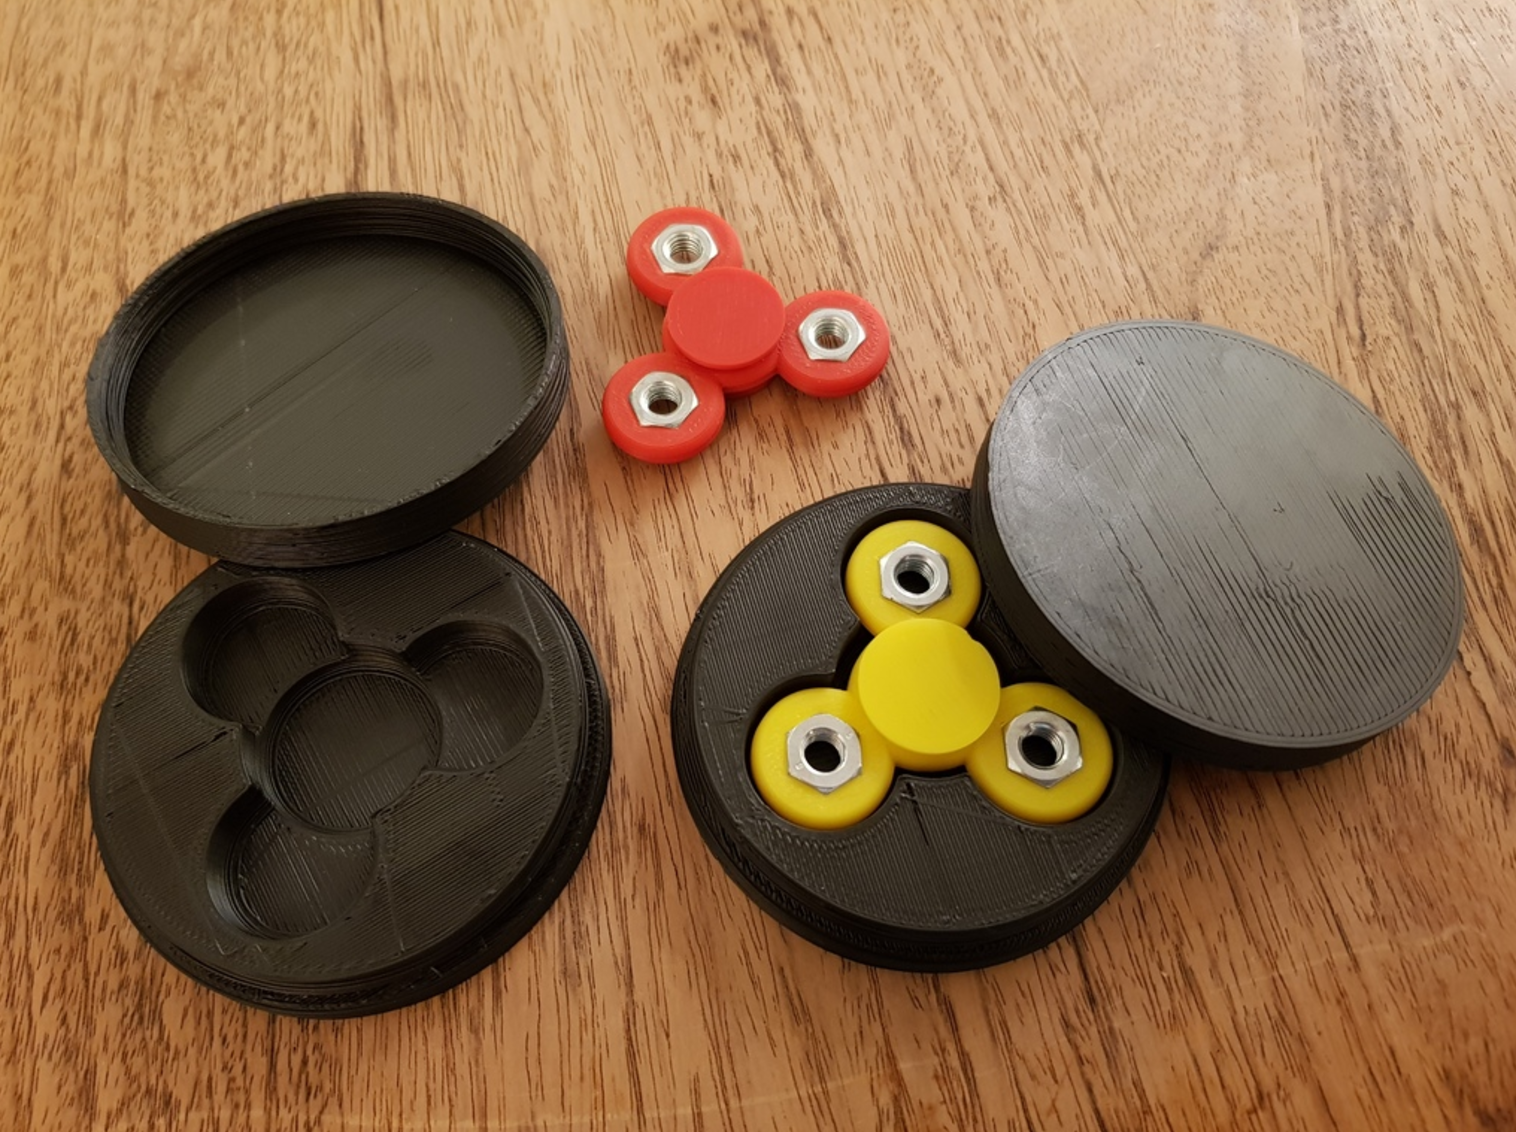 Capture d'écran 2017-06-01 à 10.08.04.png Download free STL file Customizable fidget spinner with text and perfect storage box • 3D printer template, eirikso